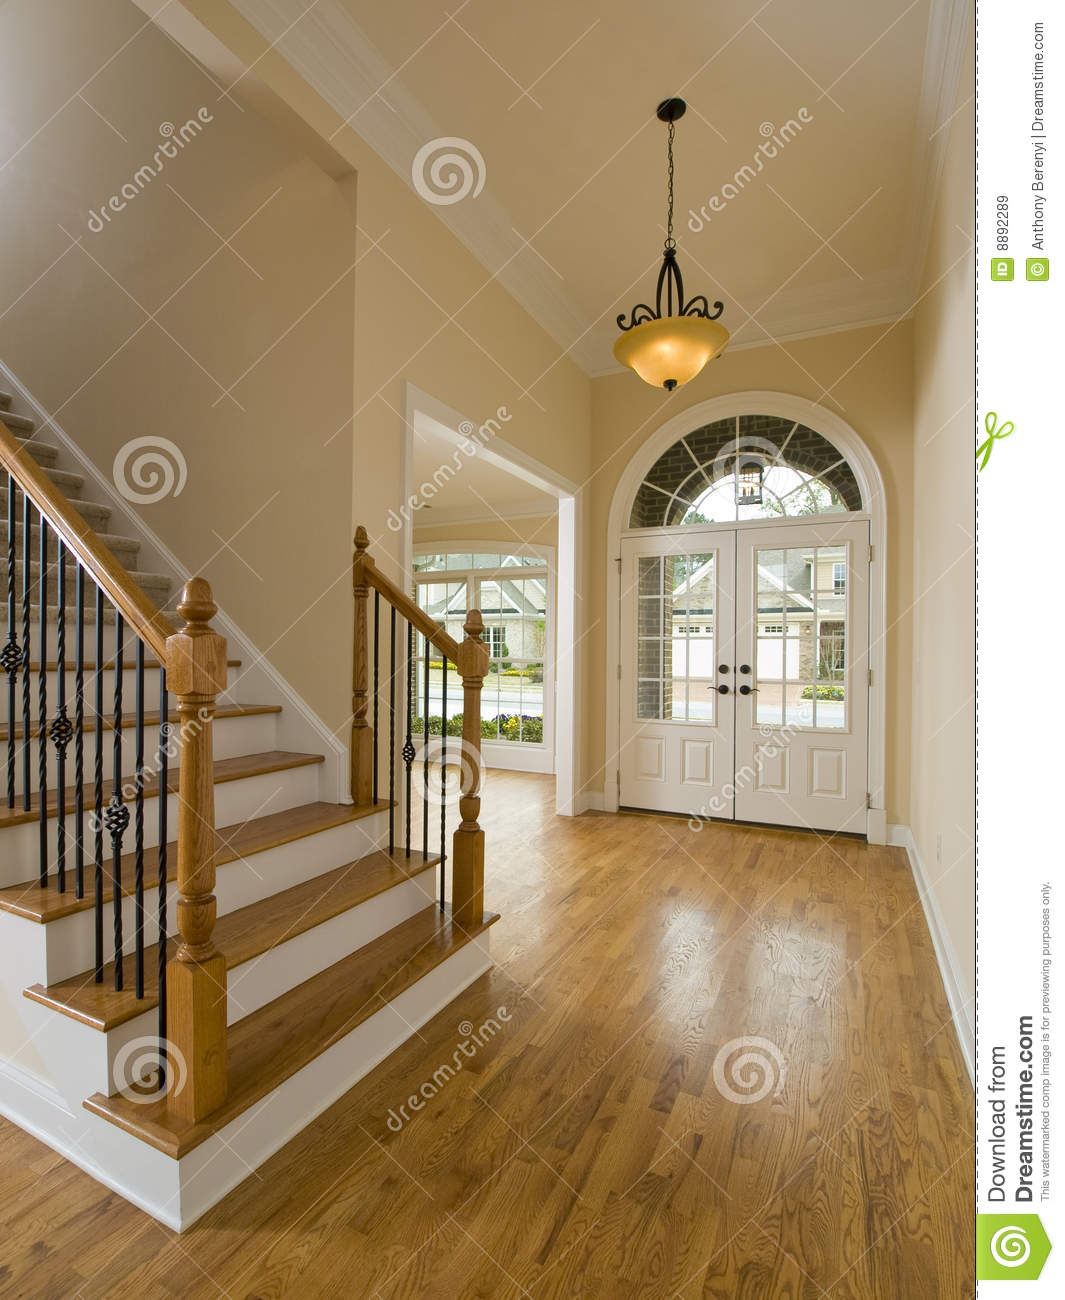 Custom Home Plans And Prices Luxury Home Staircase And Foyer Stock Image Image 8892289